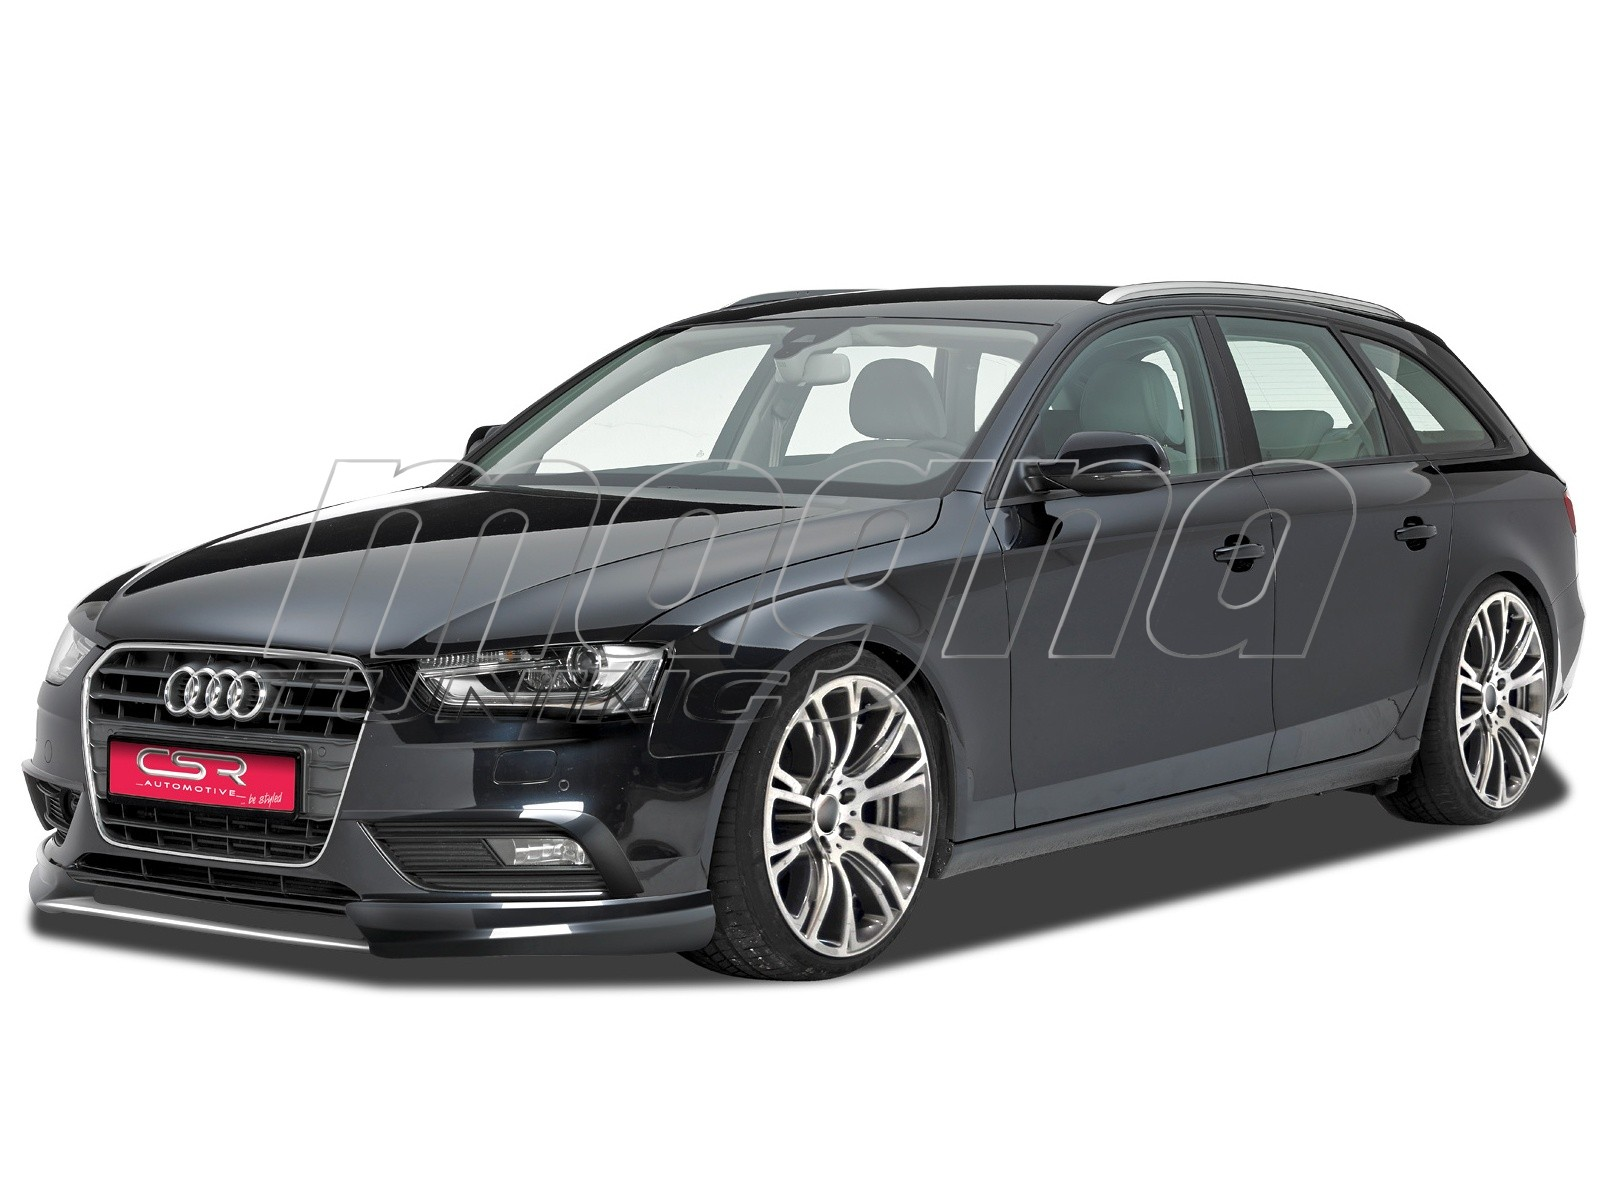 audi a4 b8 8k facelift n2 front bumper extension. Black Bedroom Furniture Sets. Home Design Ideas